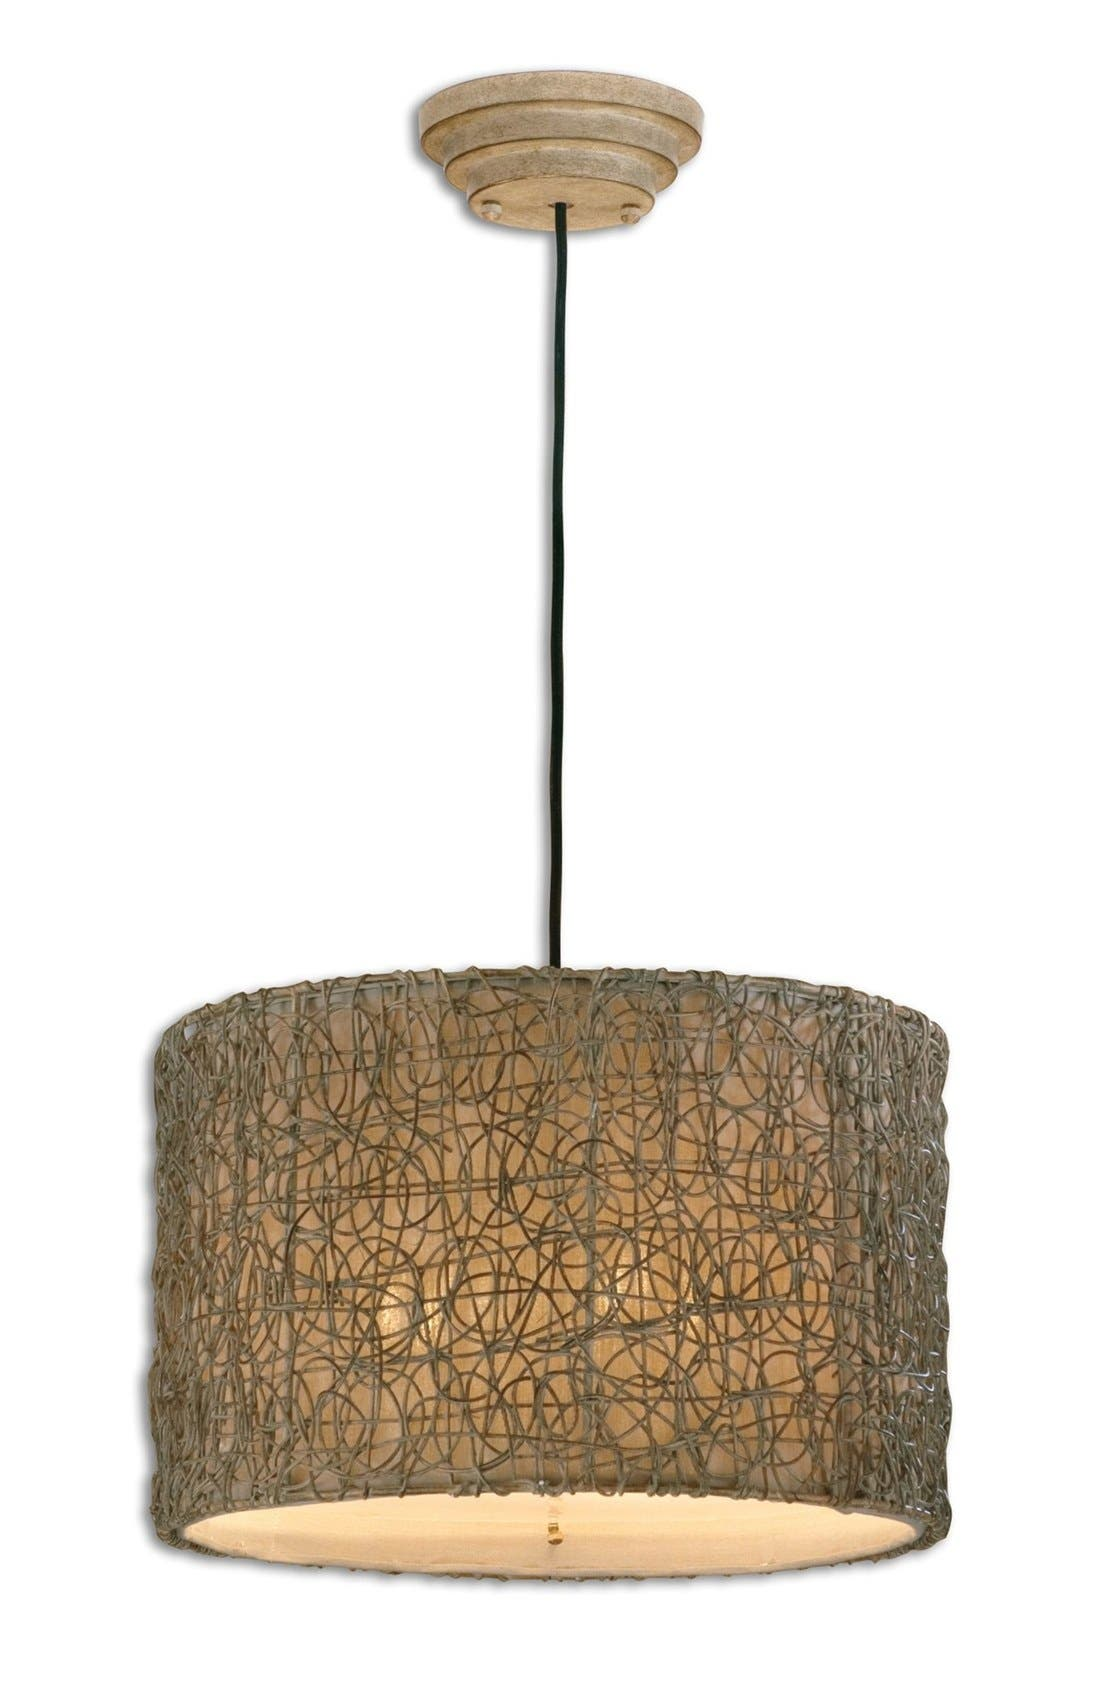 Knotted Rattan Pendant Light,                         Main,                         color, White